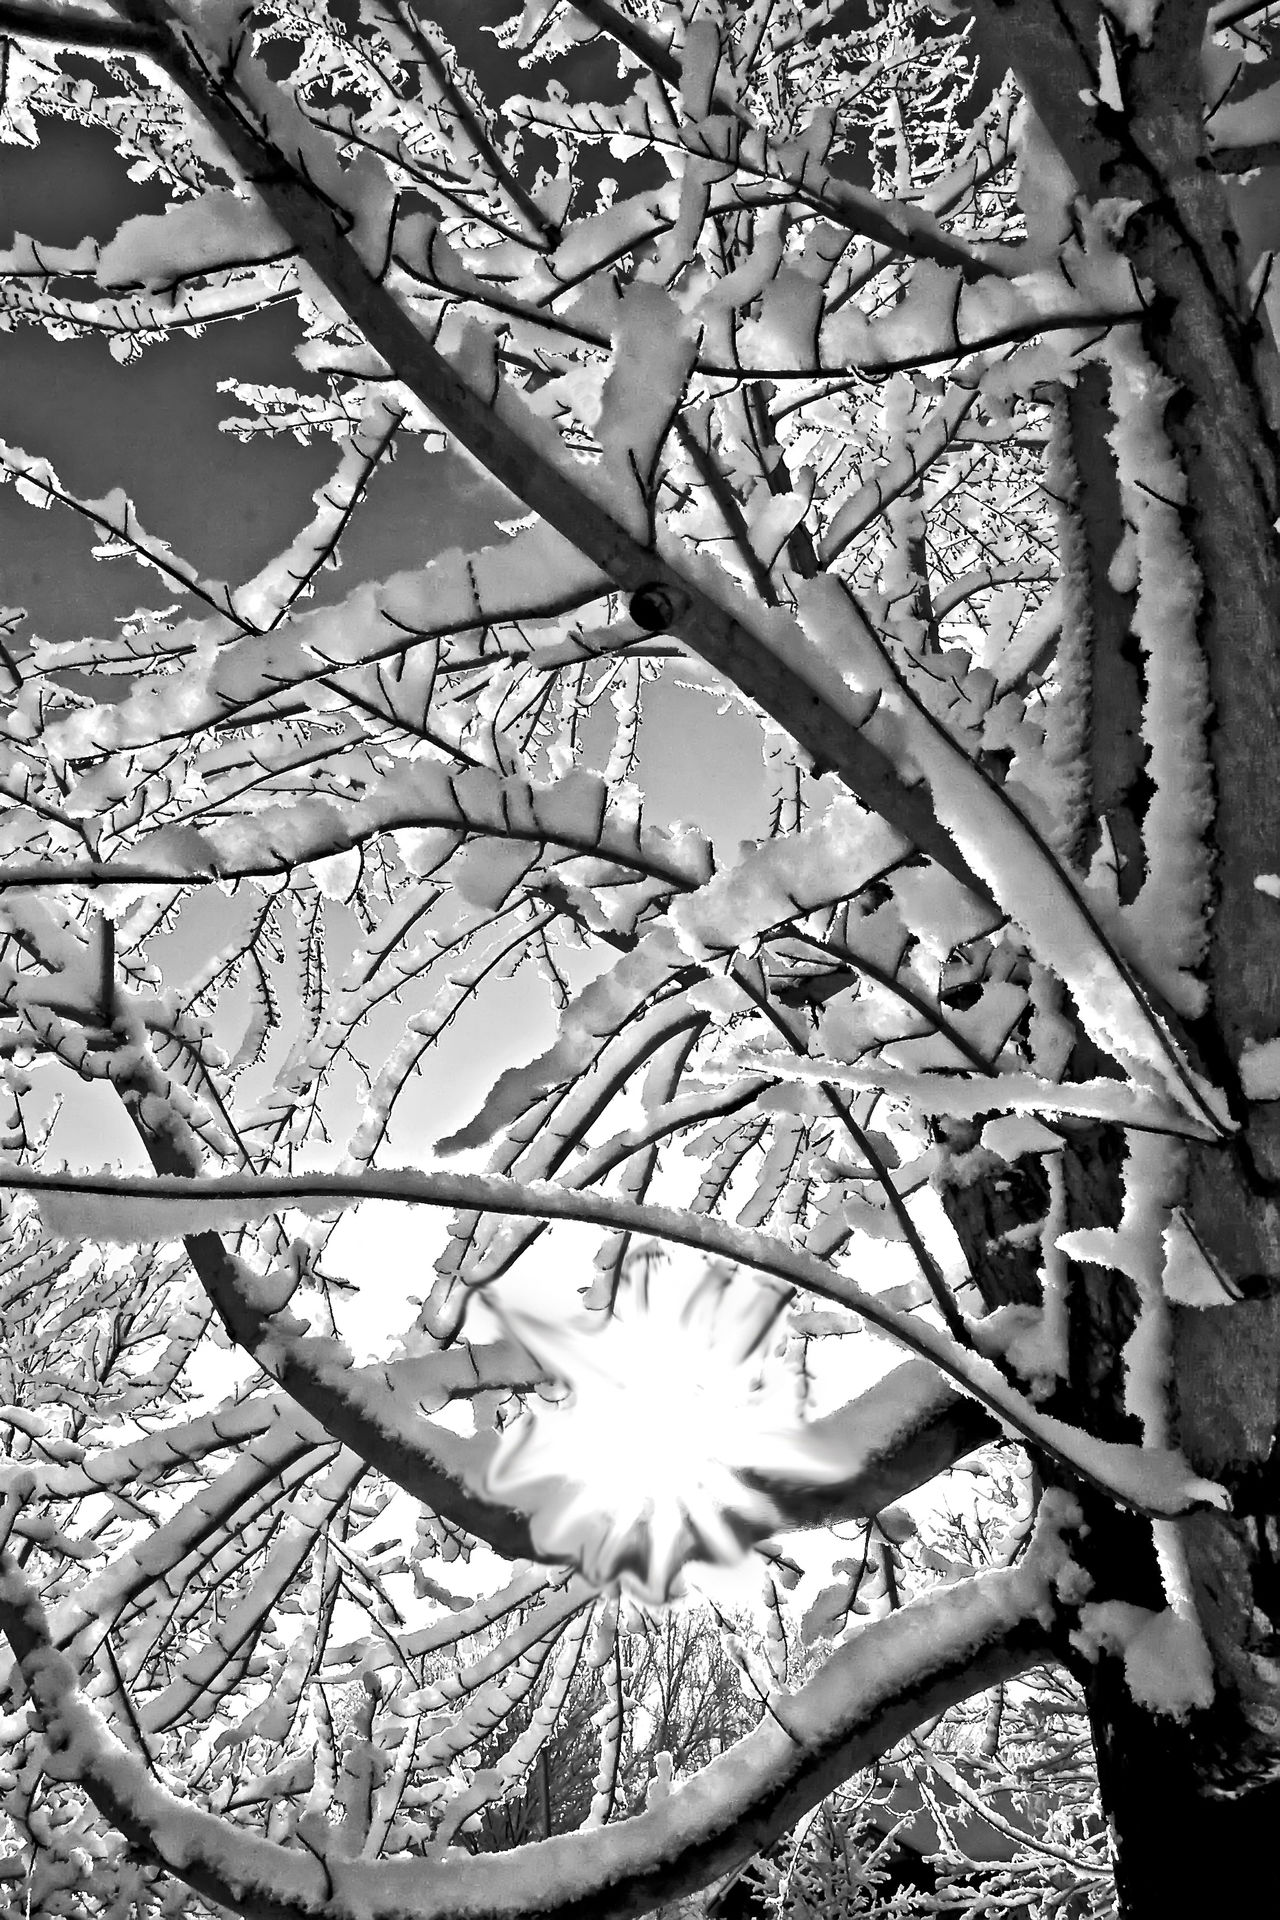 Fire And Ice Sun And Snow Tree The Great Outdoors - 2016 EyeEm Awards The Great Outdoors With Adobe Blackandwhite Photography Snow ❄ Snowfall Snow And Sun Snow And Tree Fine Art Photography